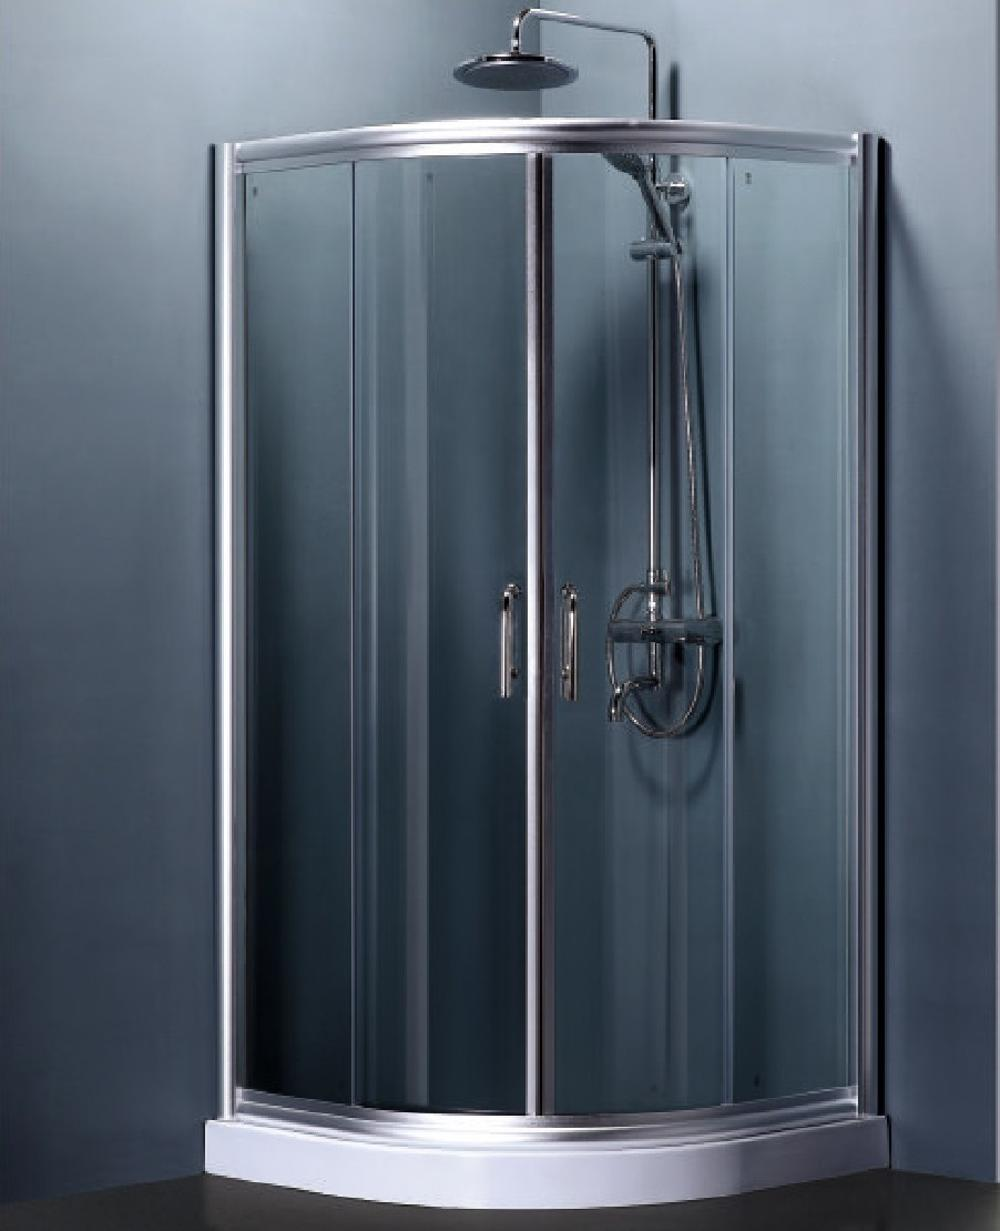 Shower Door Plastic Slide, Shower Door Plastic Slide Suppliers and ...